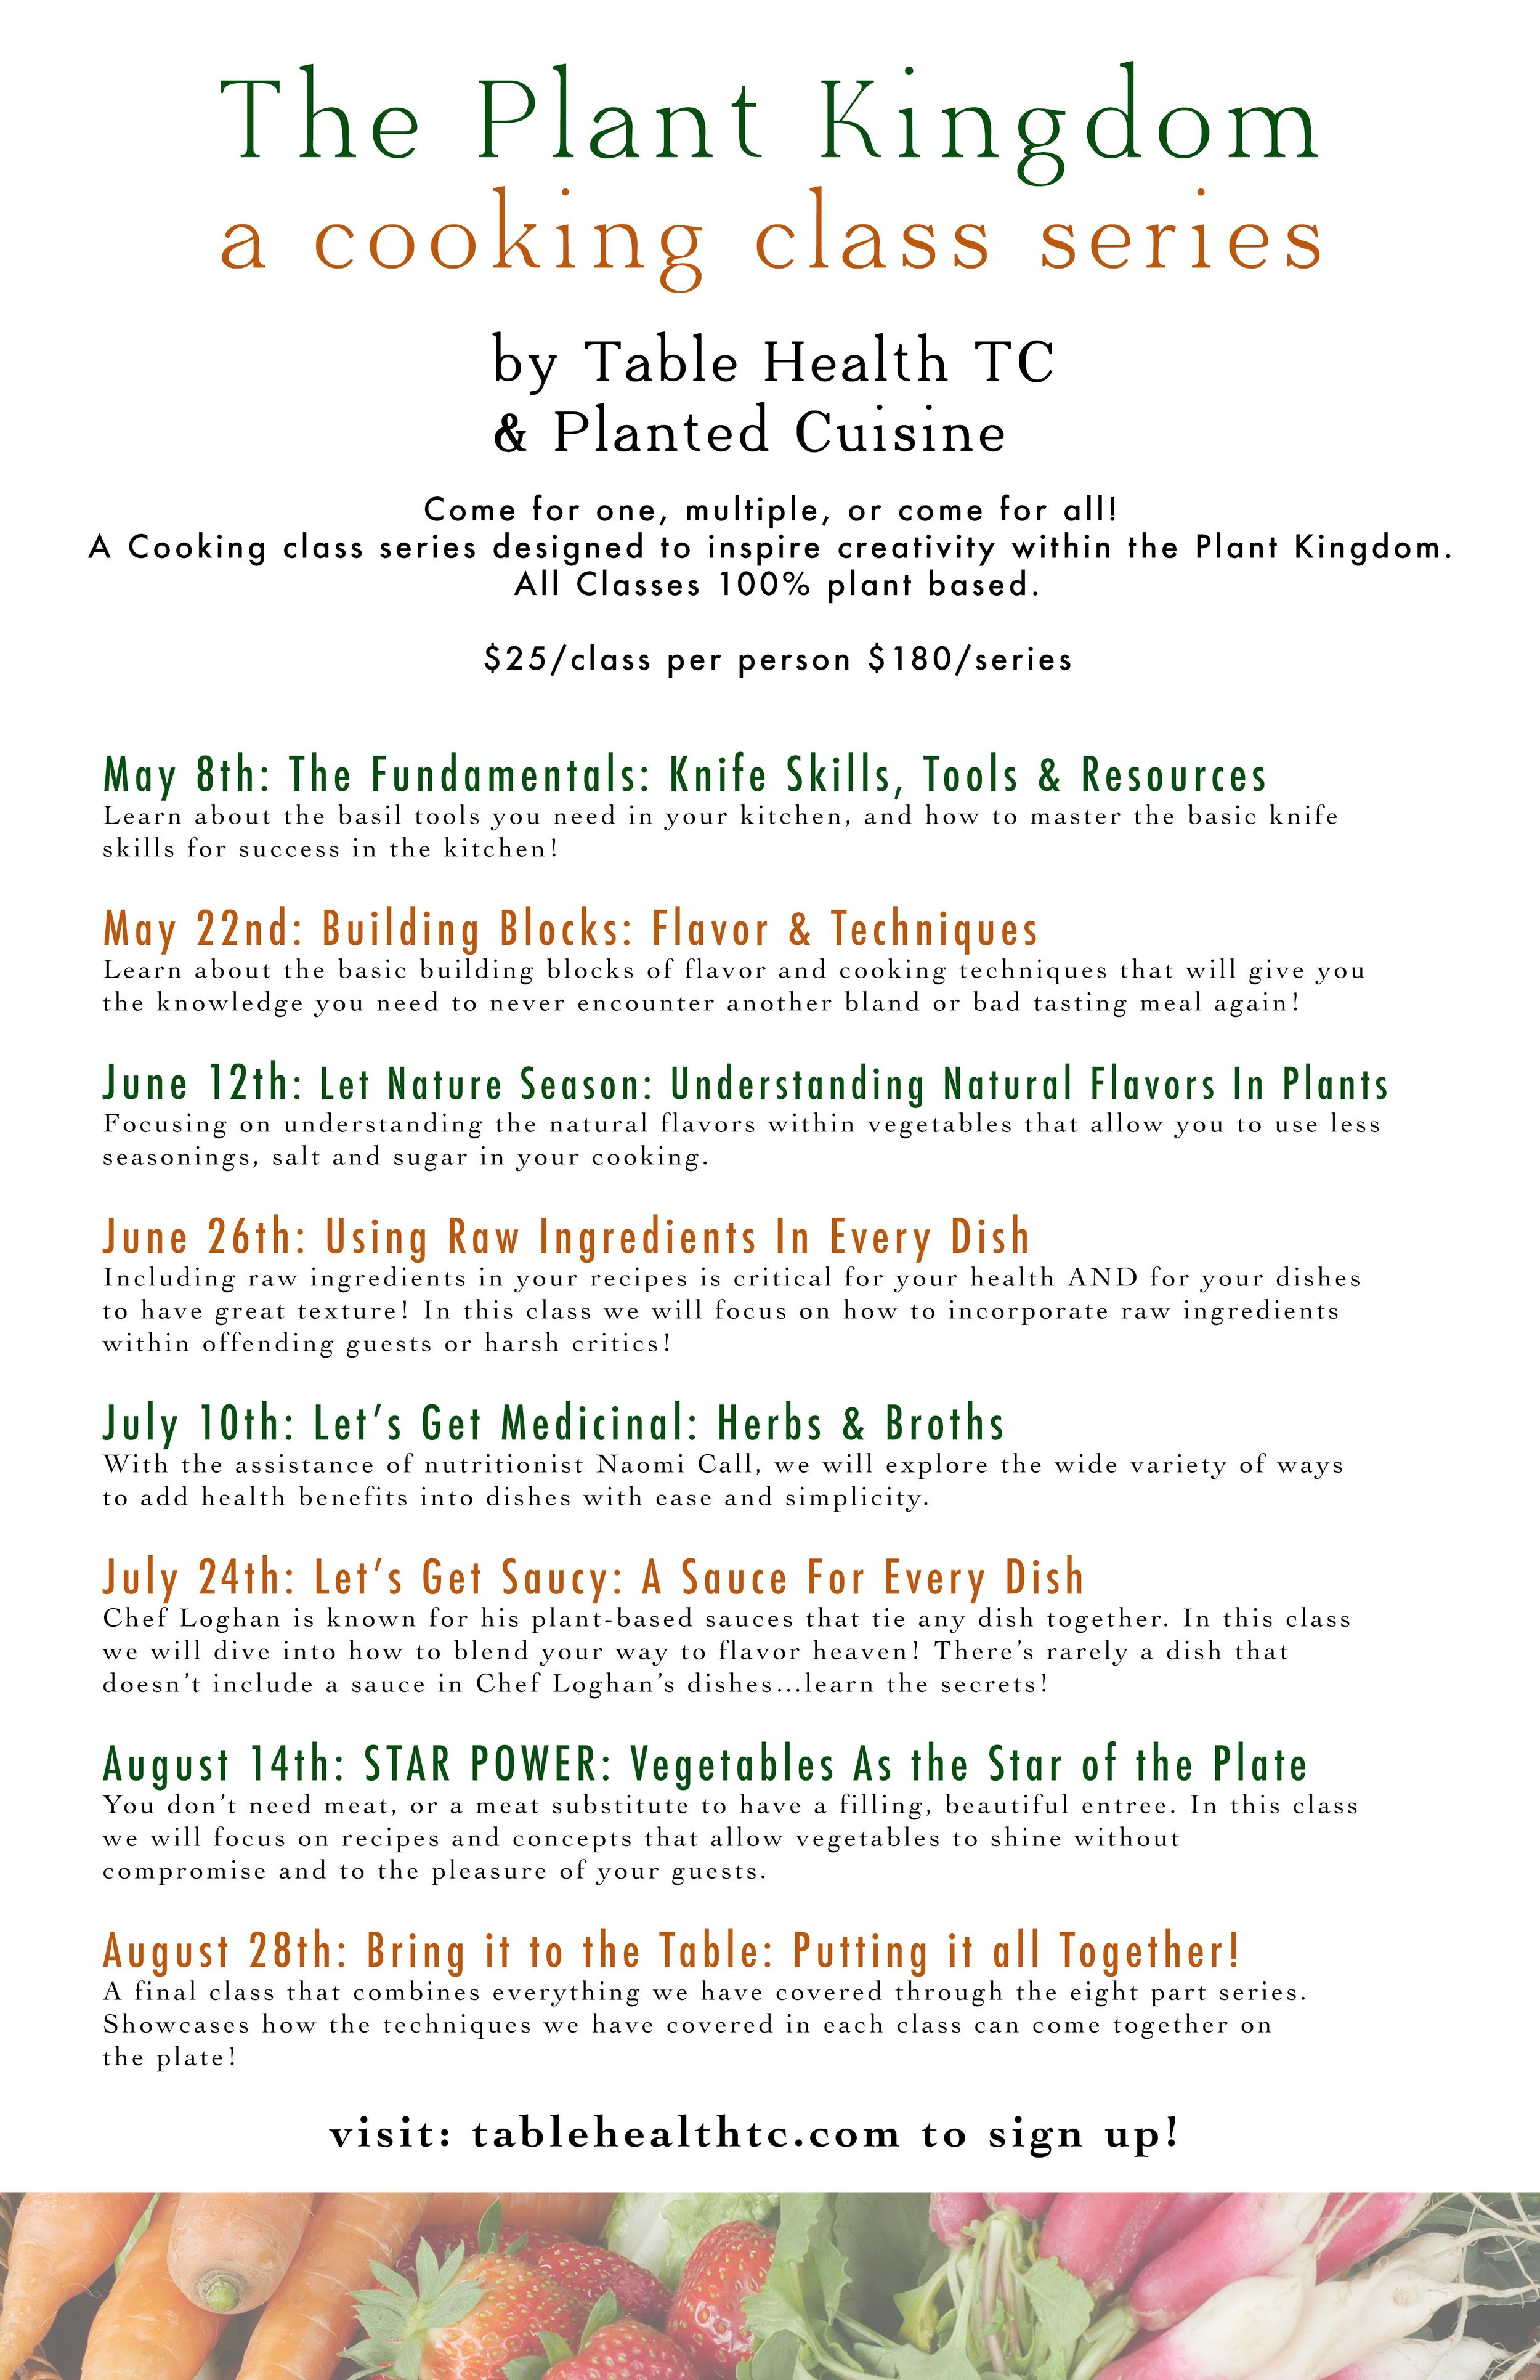 The Plant Kingdom Cooking Class Series Poster Full Small.jpg